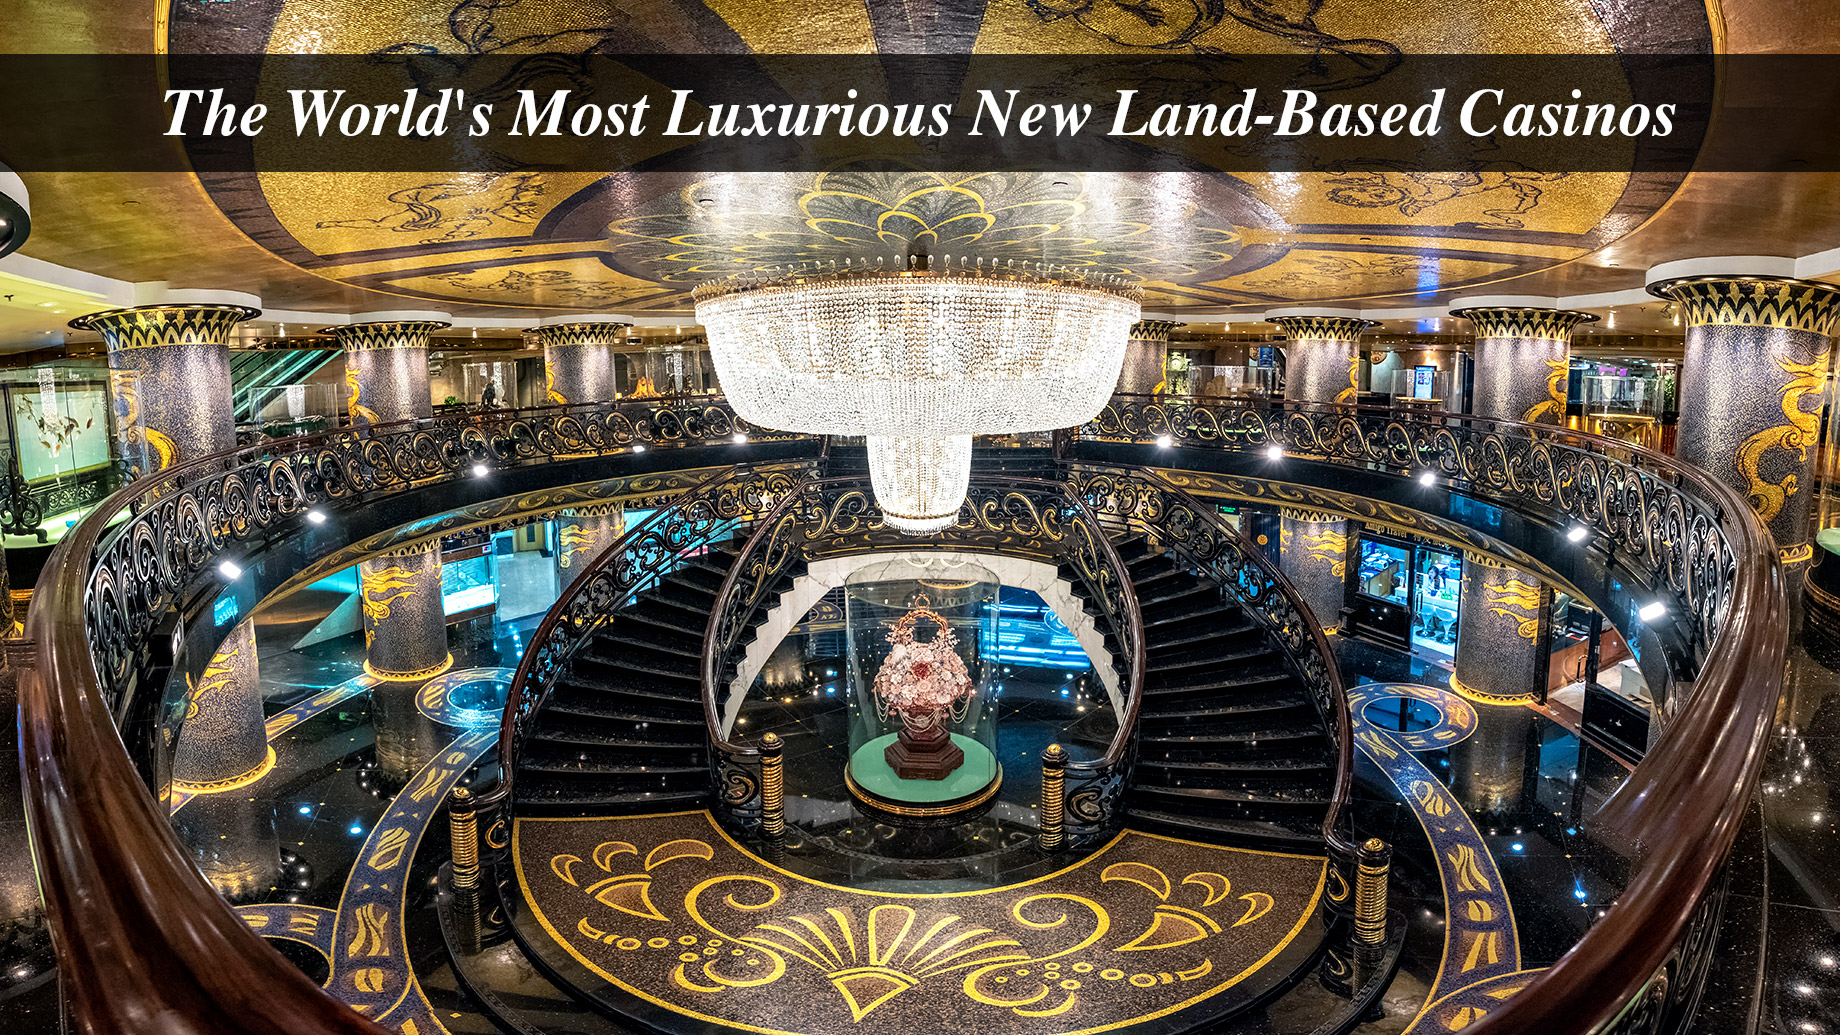 The World's Most Luxurious New Land-Based Casinos